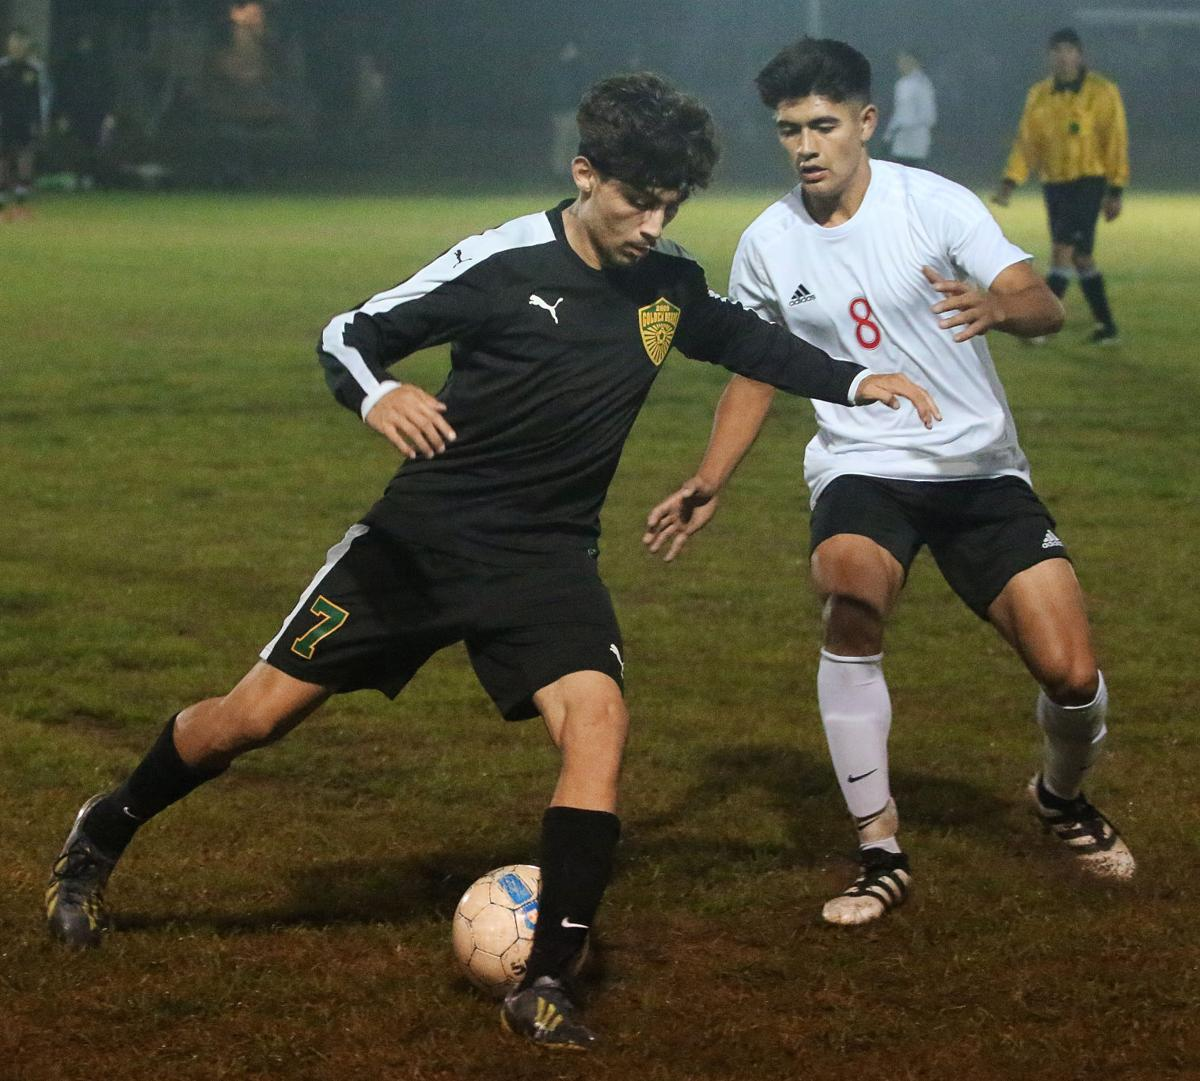 New season: Sierra Pacific soccer preview